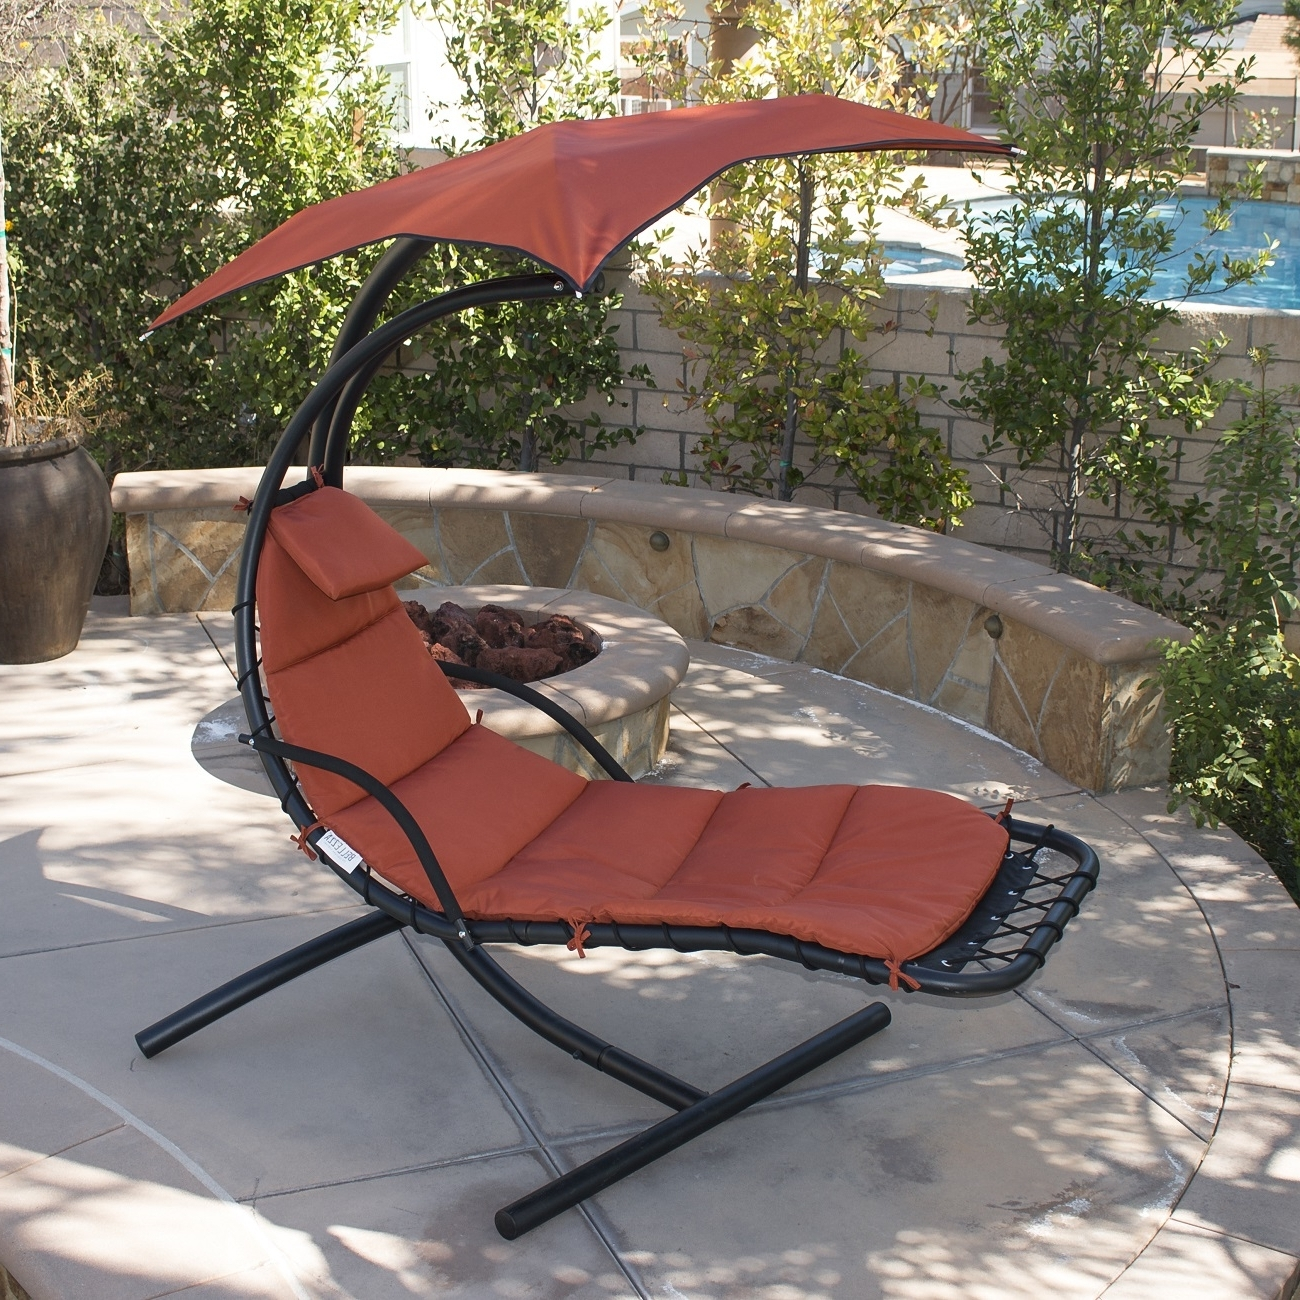 Chaise Lounge Chair With Canopy • Lounge Chairs Ideas Inside Most Current Chaise Lounge Chair With Canopy (View 3 of 15)